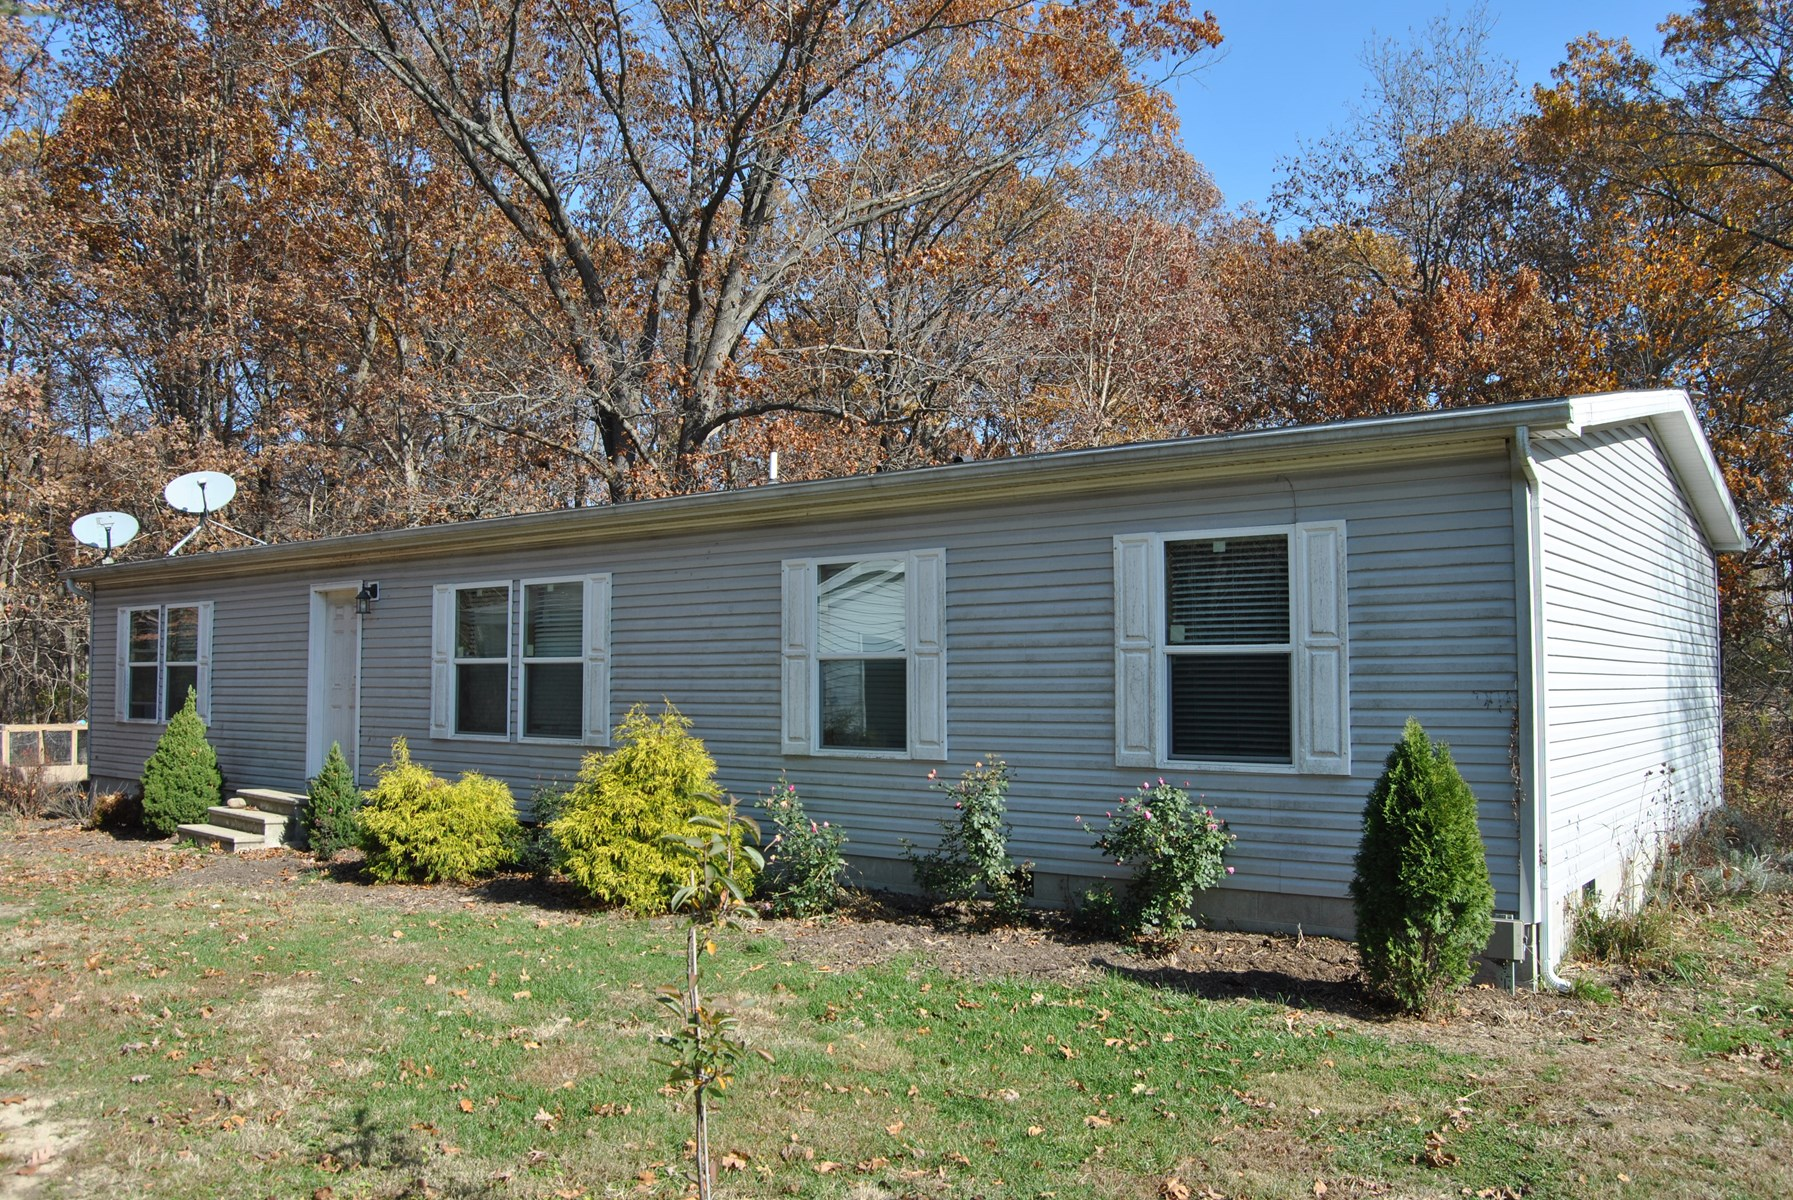 3 Bedroom, 2 Bath Country Home